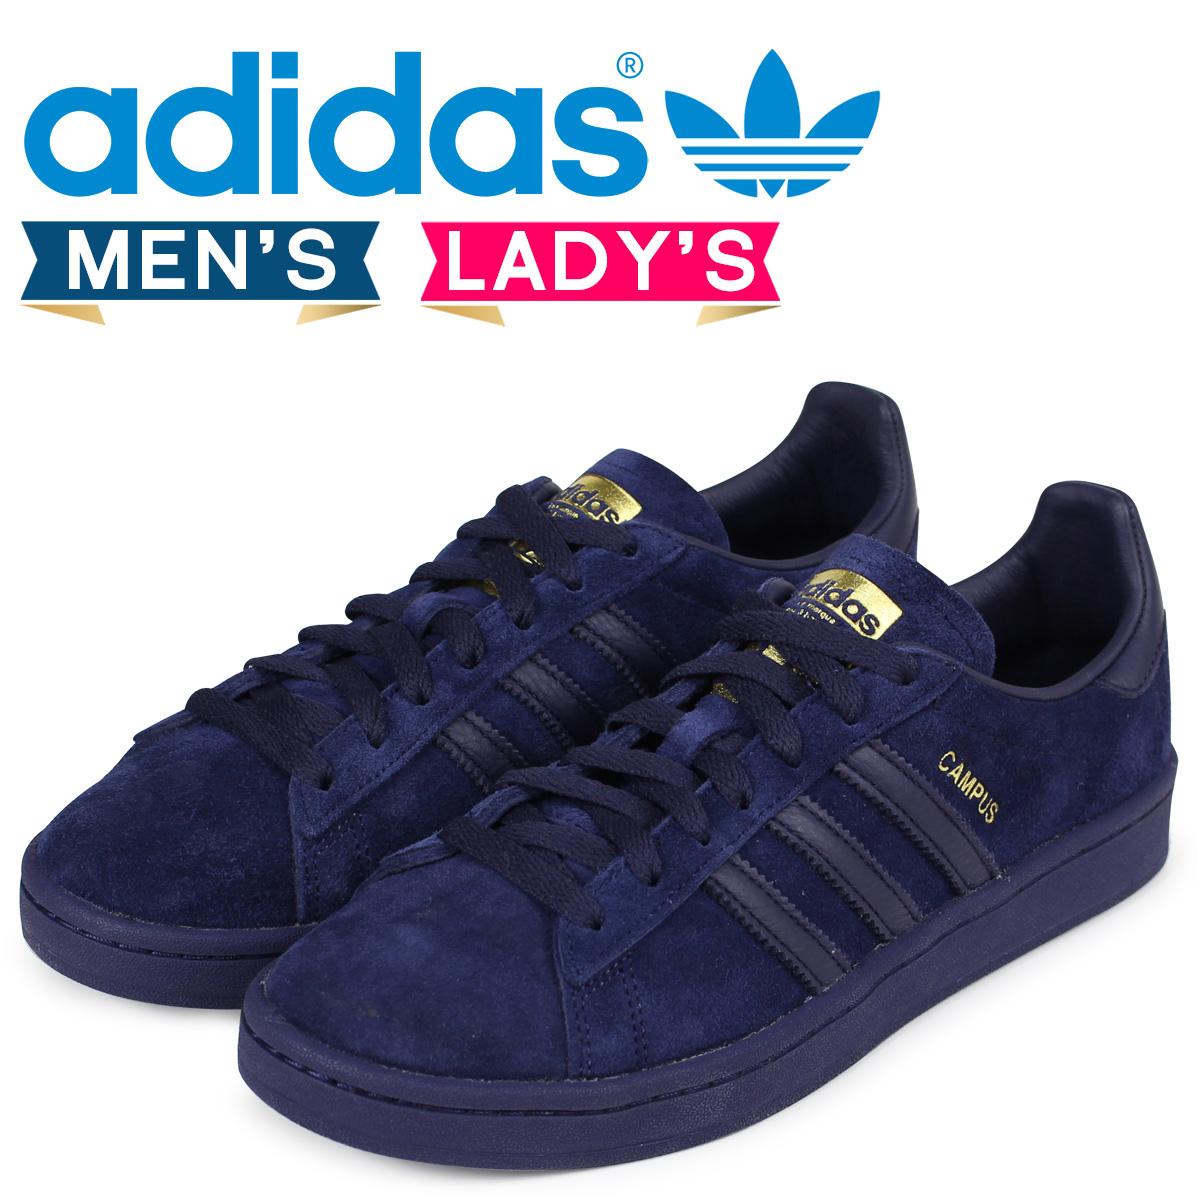 économiser ec2ab 2a495 adidas Originals CAMPUS Adidas campus sneakers men gap Dis CQ2045 navy  originals [load planned Shinnyu load in reservation product 1/18  containing] ...